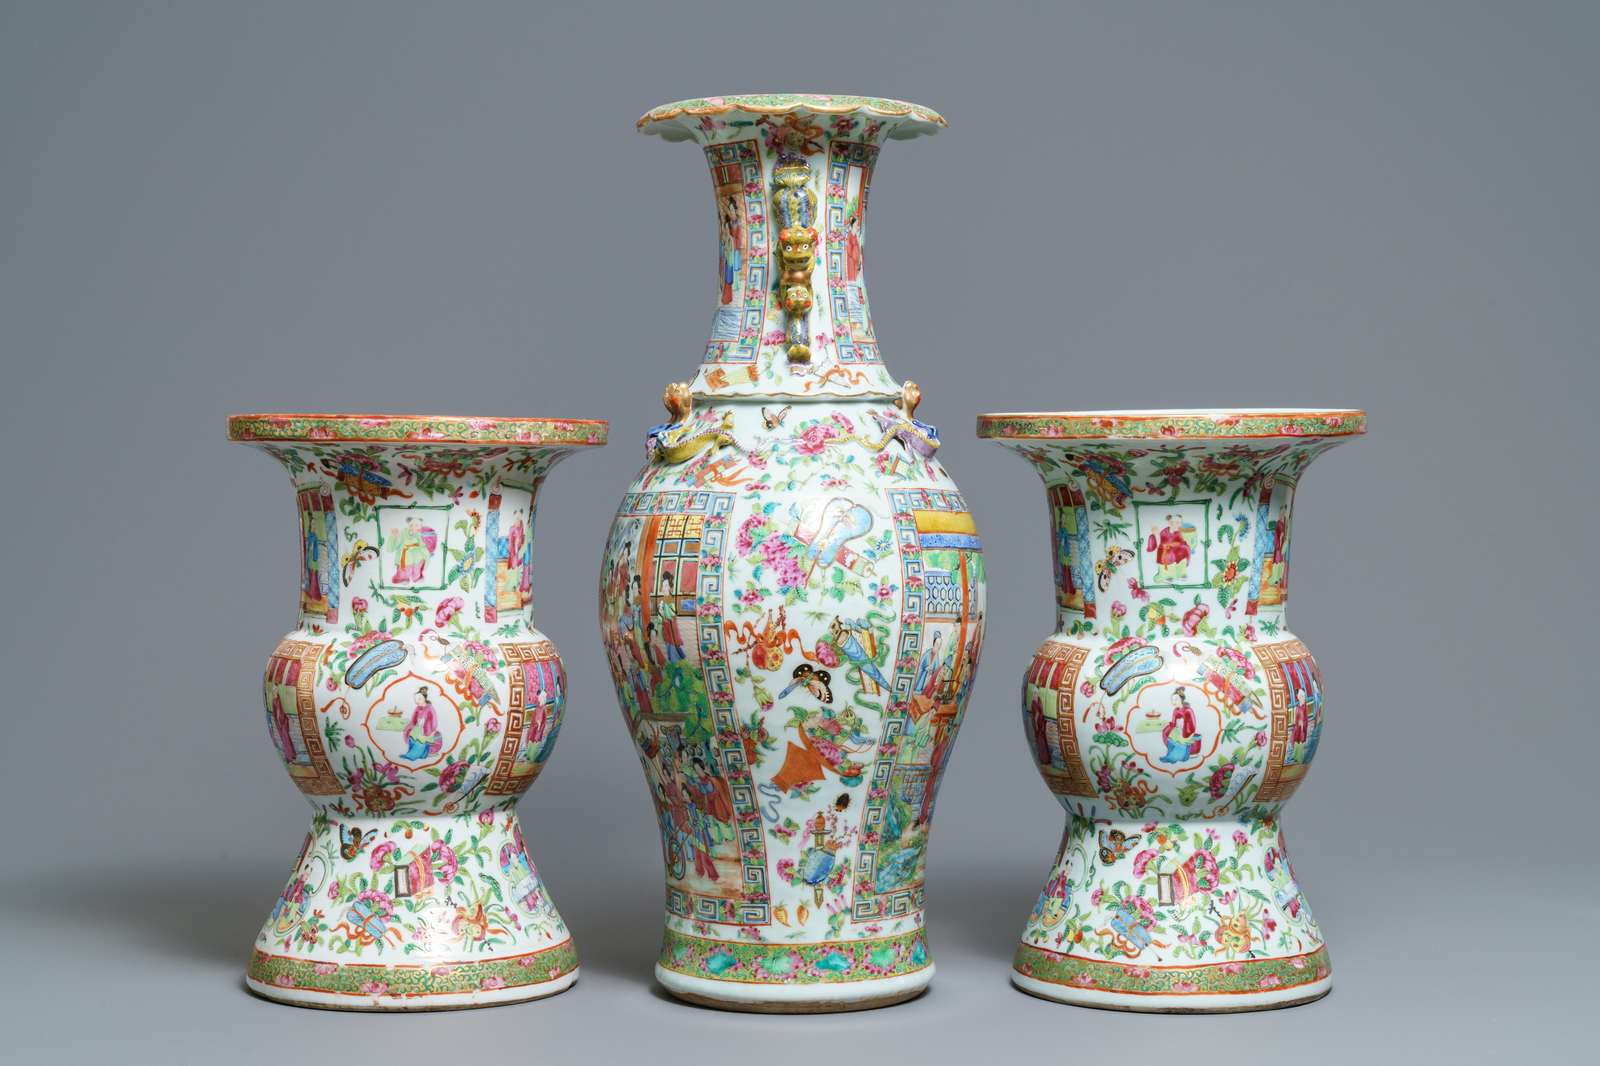 A pair of Chinese Canton famille rose spittoons and a vase, 19th C. - Image 4 of 6